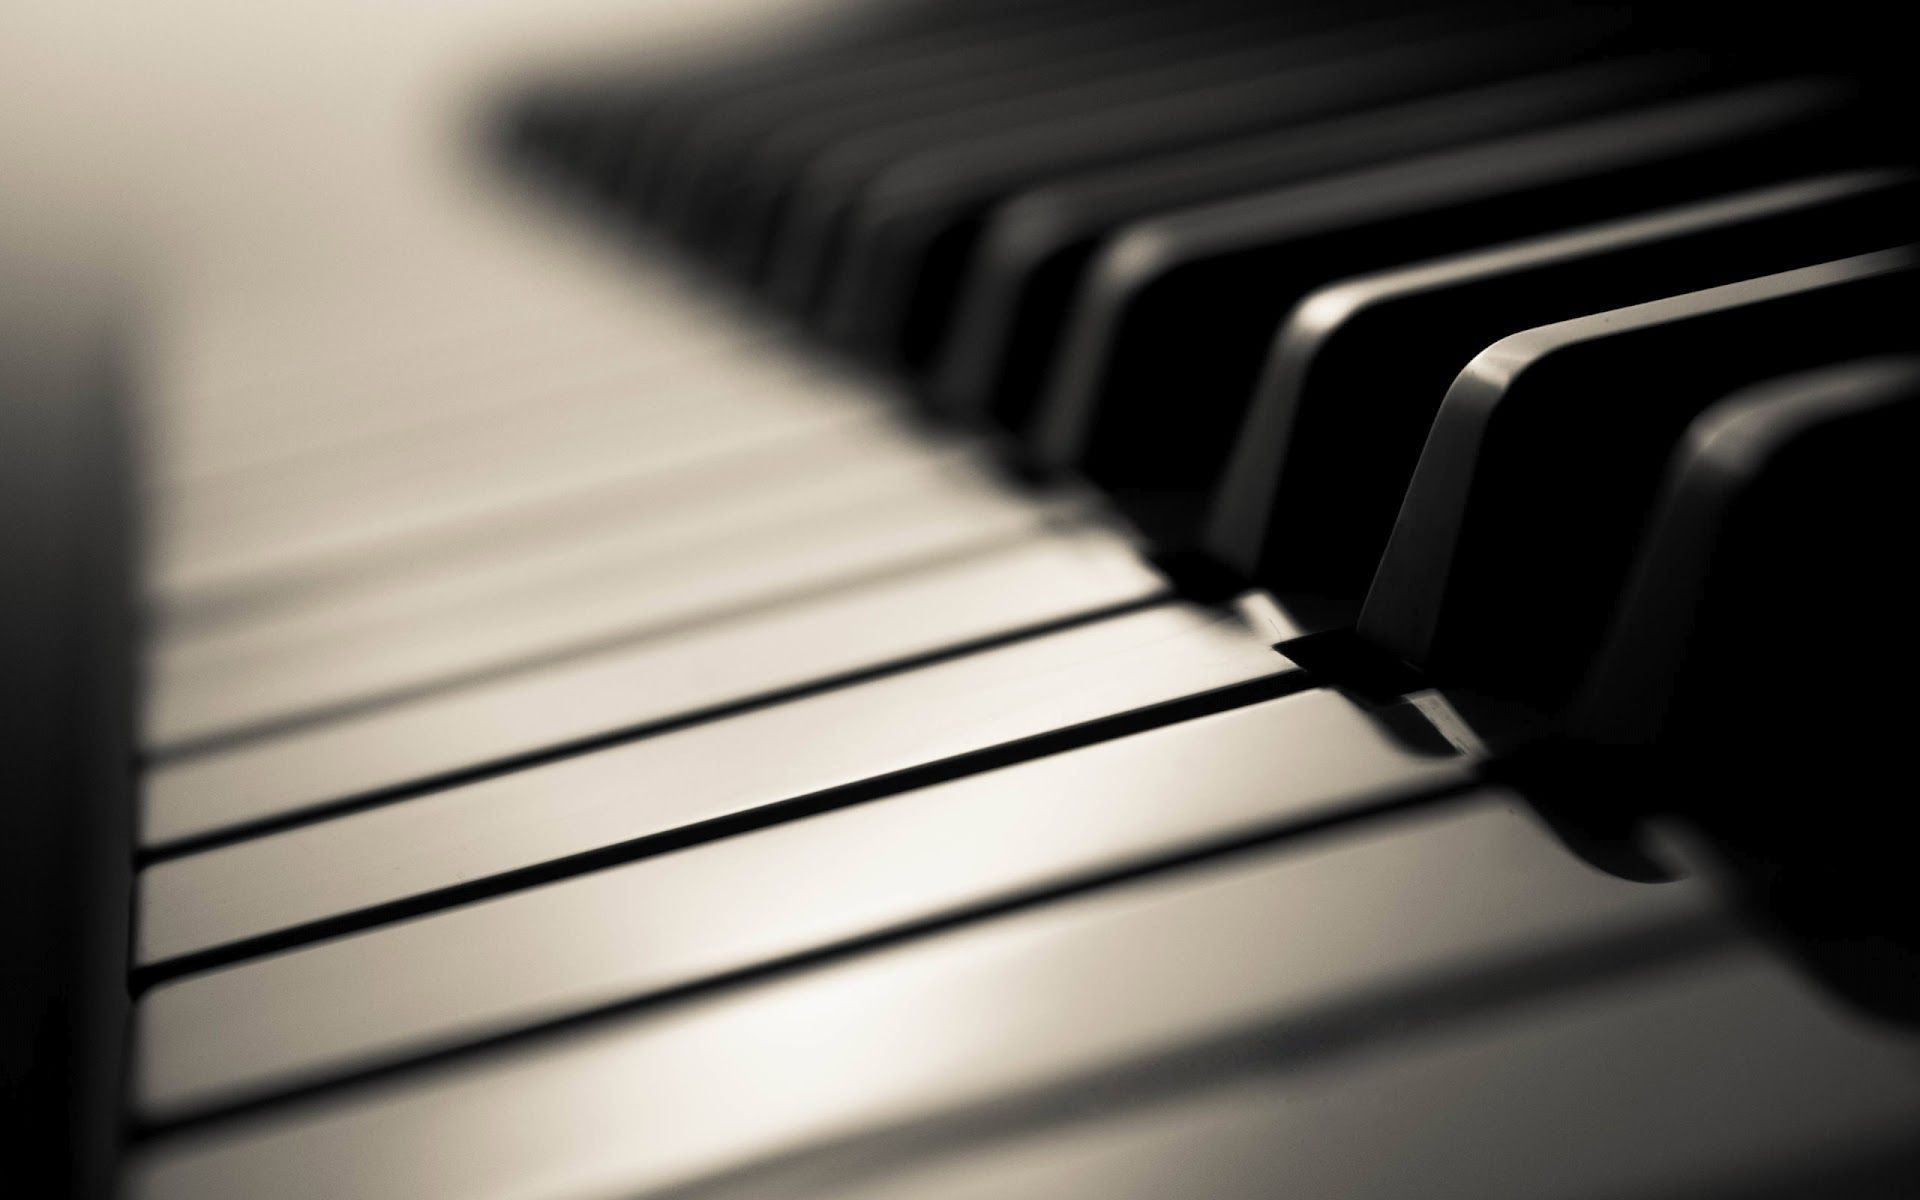 Preview Piano Image By Salacia Beazley